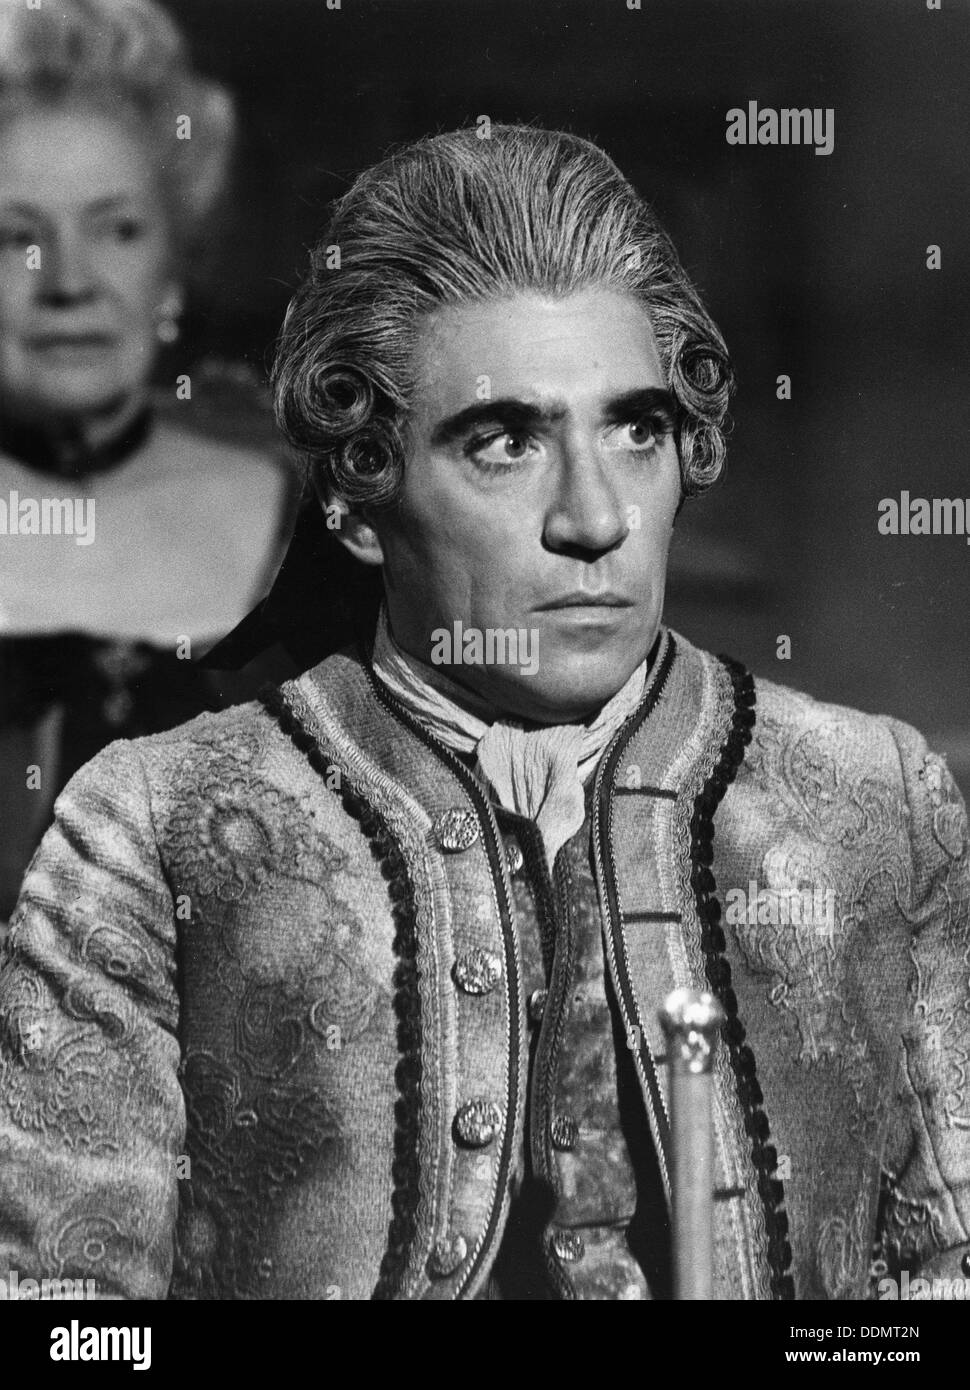 Frank Finlay (1926- ), British actor as Cassanova in 'Window, Window'. - Stock Image